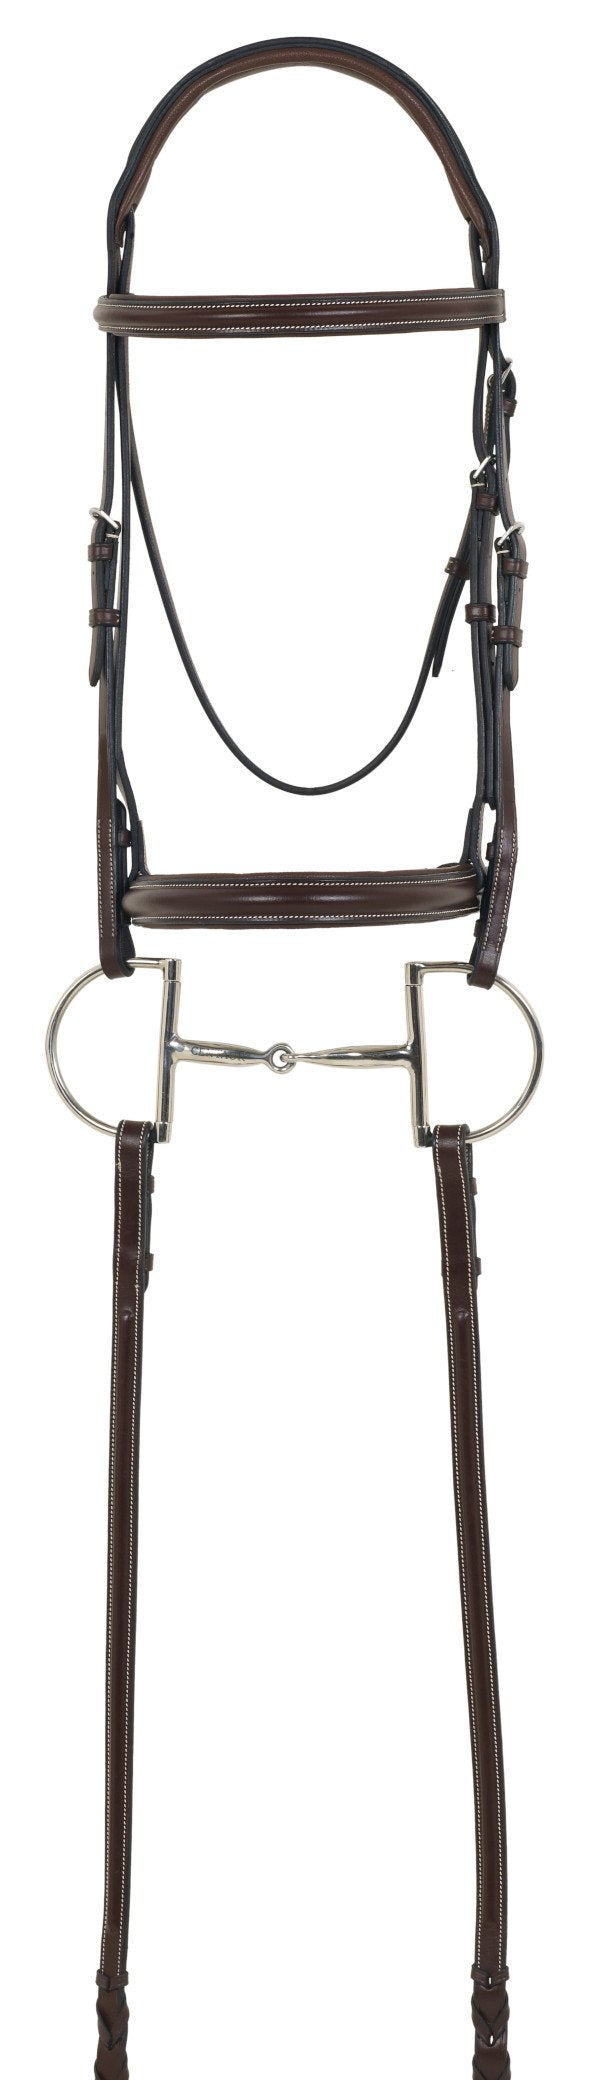 Camelot Gold RCS Plain Raised Padded Bridle with Reins